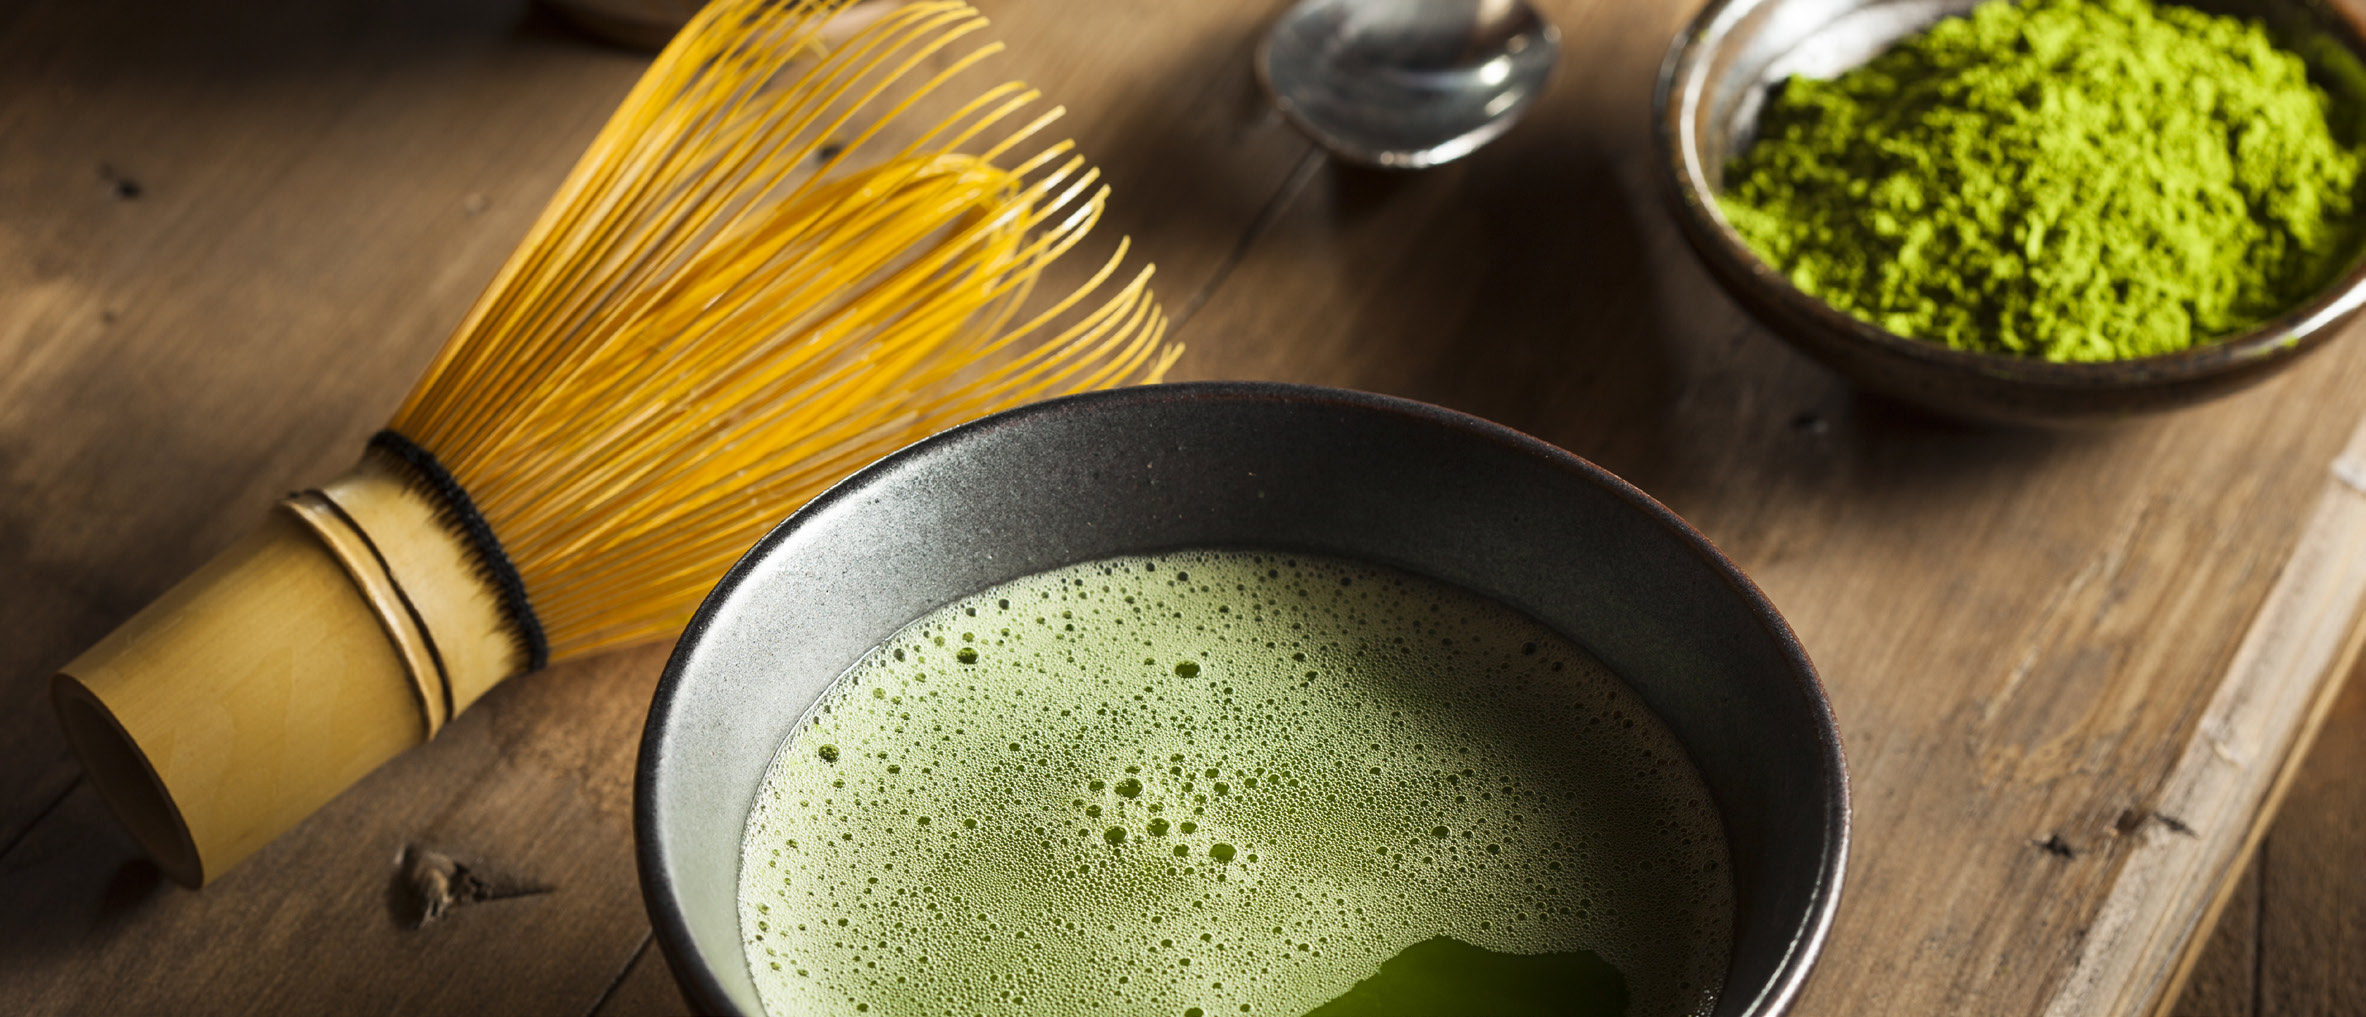 Brewing up a first mover advantage for Lipton with Matcha